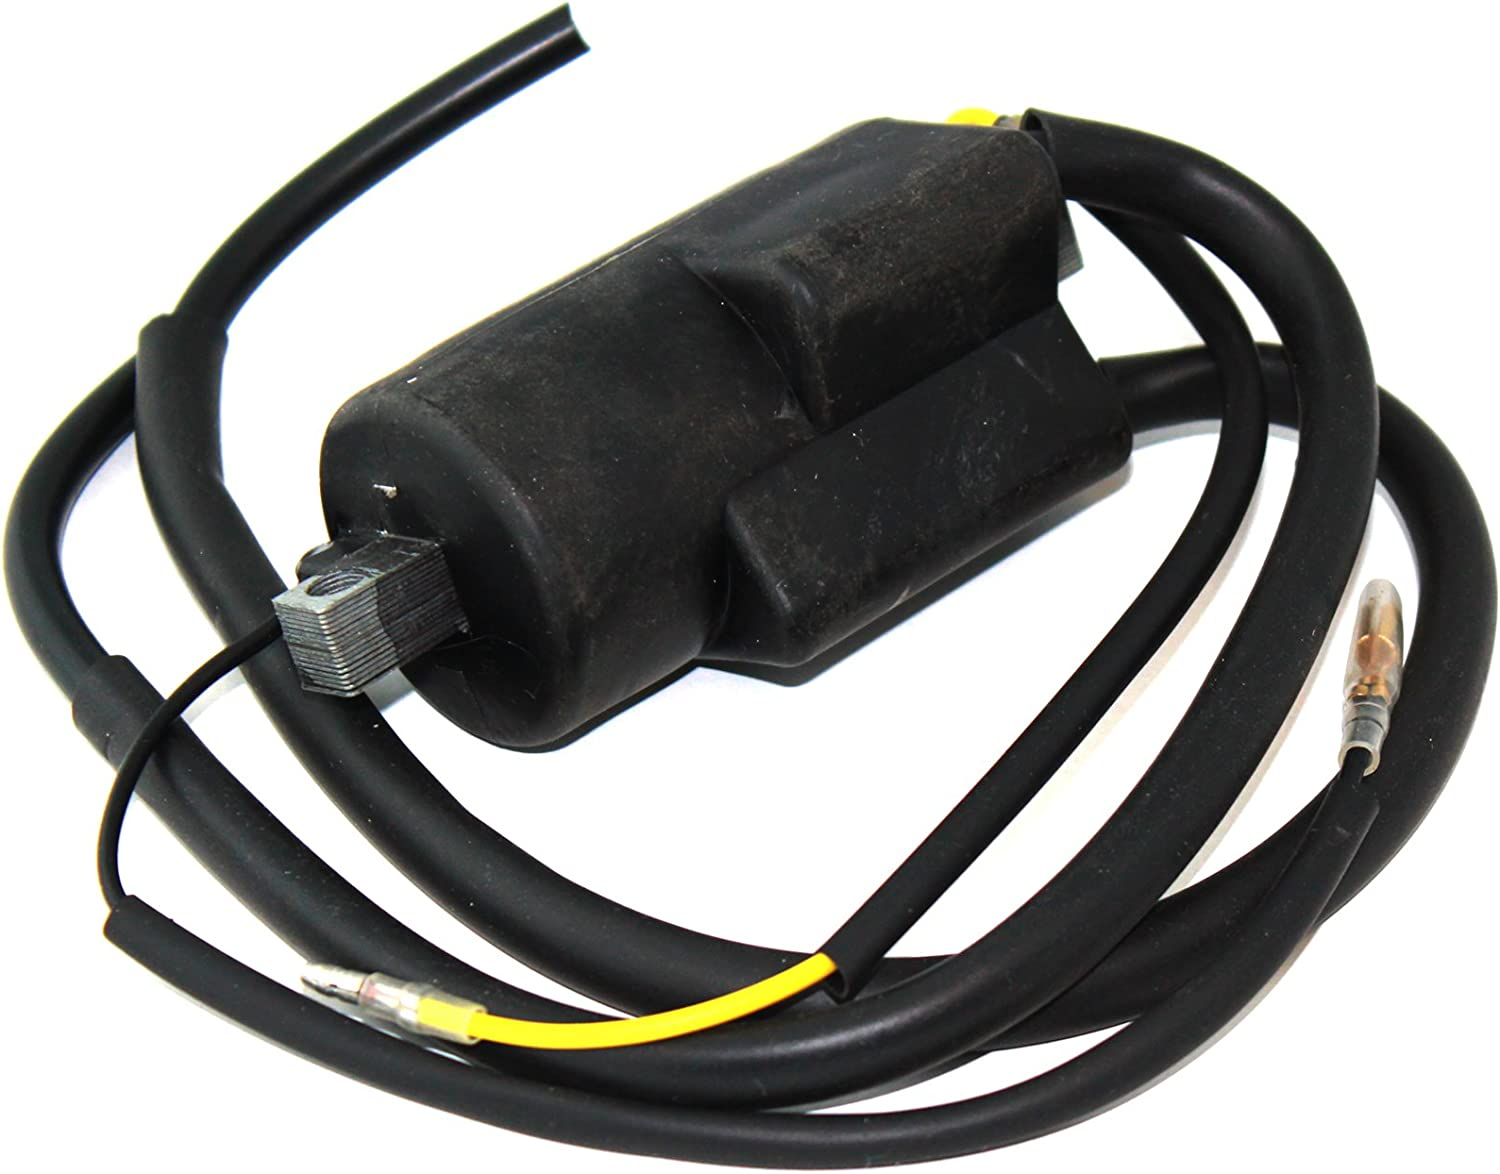 Caltric Ignition Coil Compatible With Kz-440 Ranking TOP1 1980 Kz440 trust Kawasaki